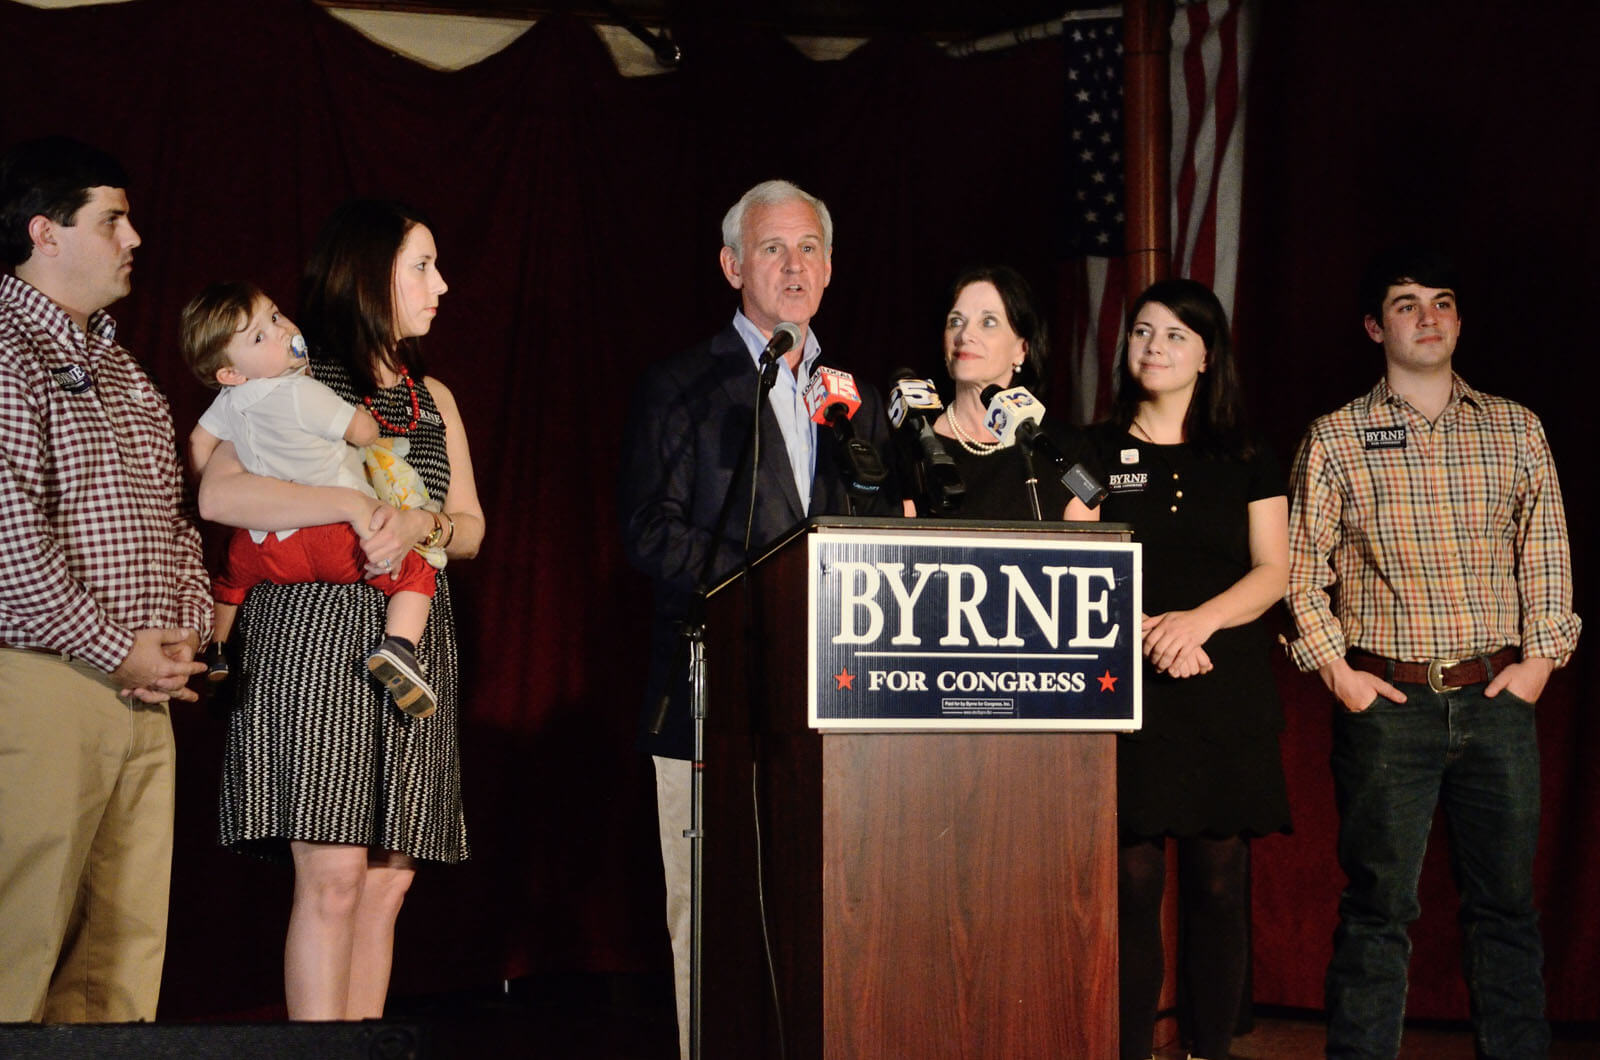 Byrne defeats Young to win Congressional re-election